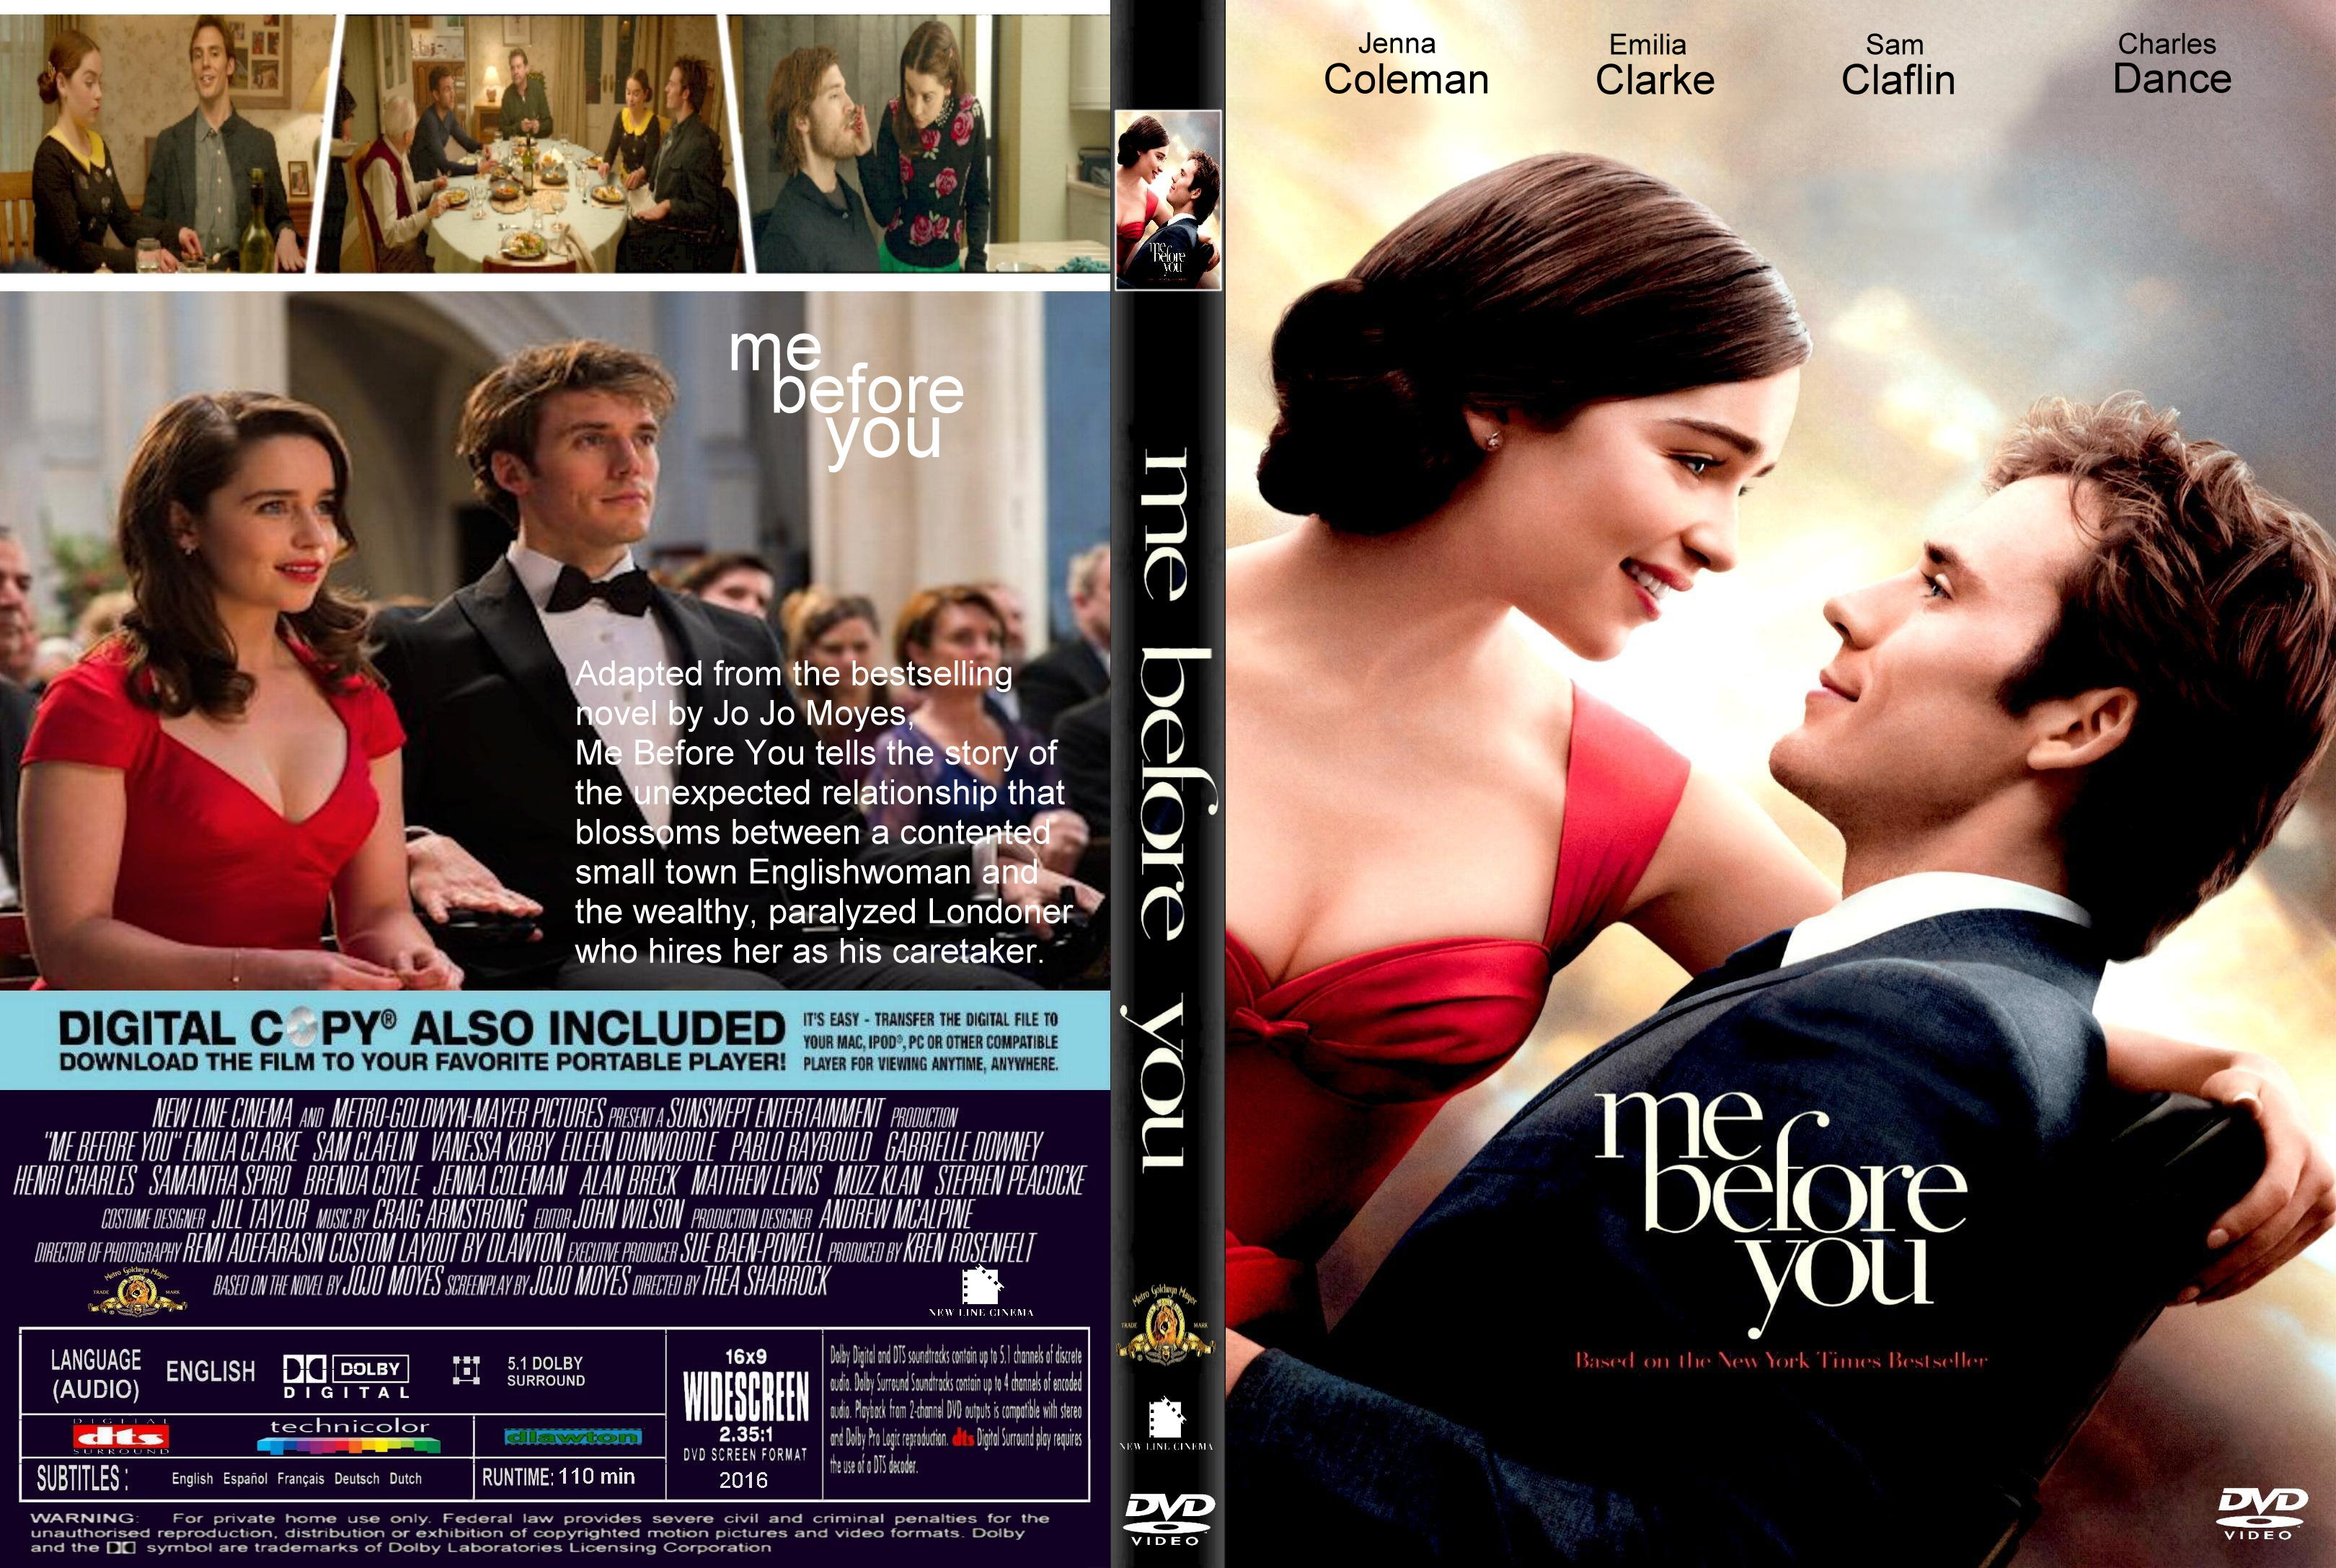 Me Before You 2016 Front Dvd Covers Cover Century Over 500 000 Album Art Covers For Free